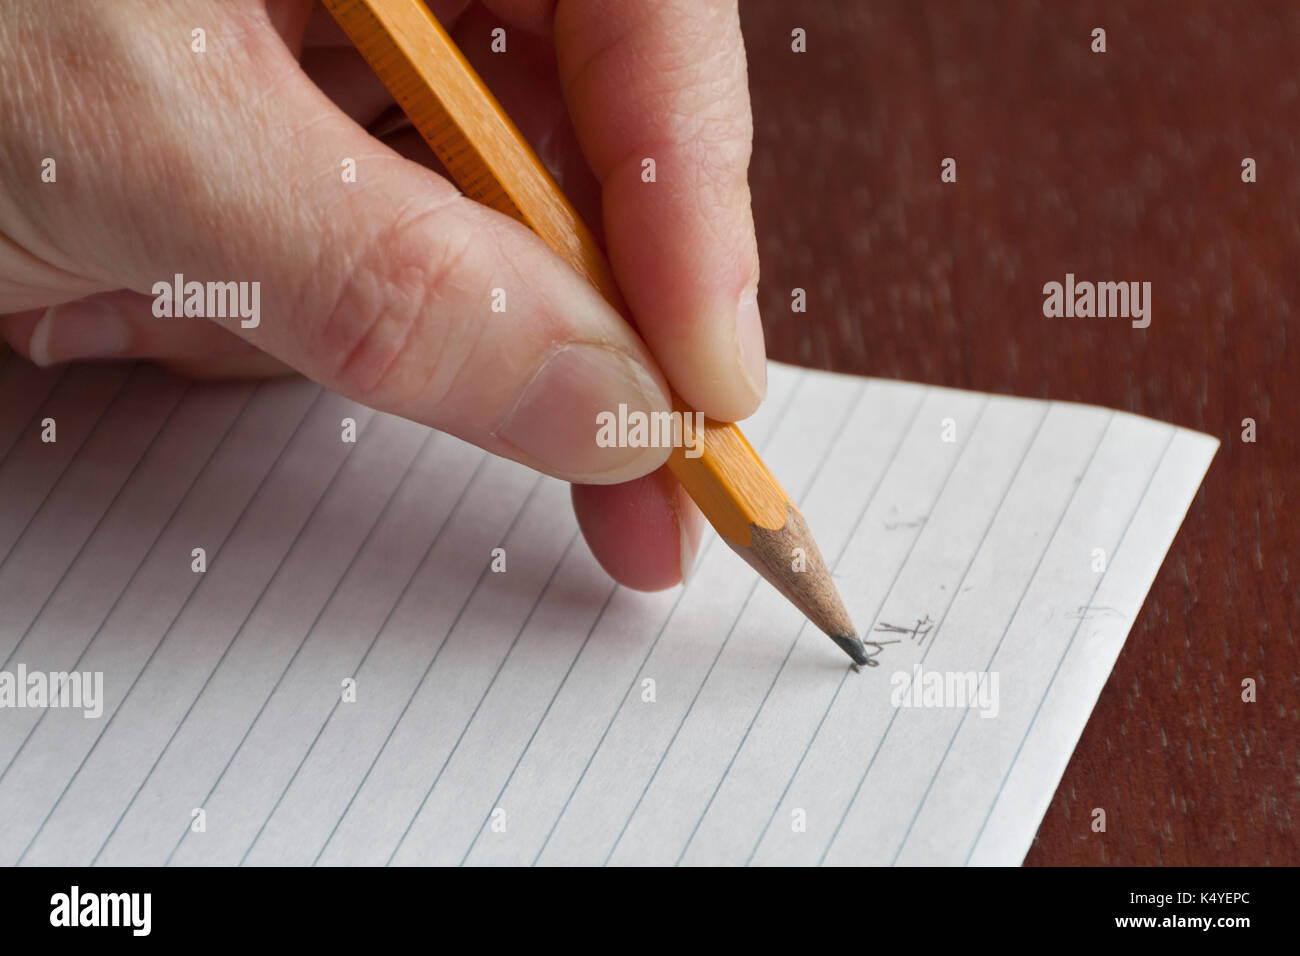 Left hand writing with a pencil - Stock Image